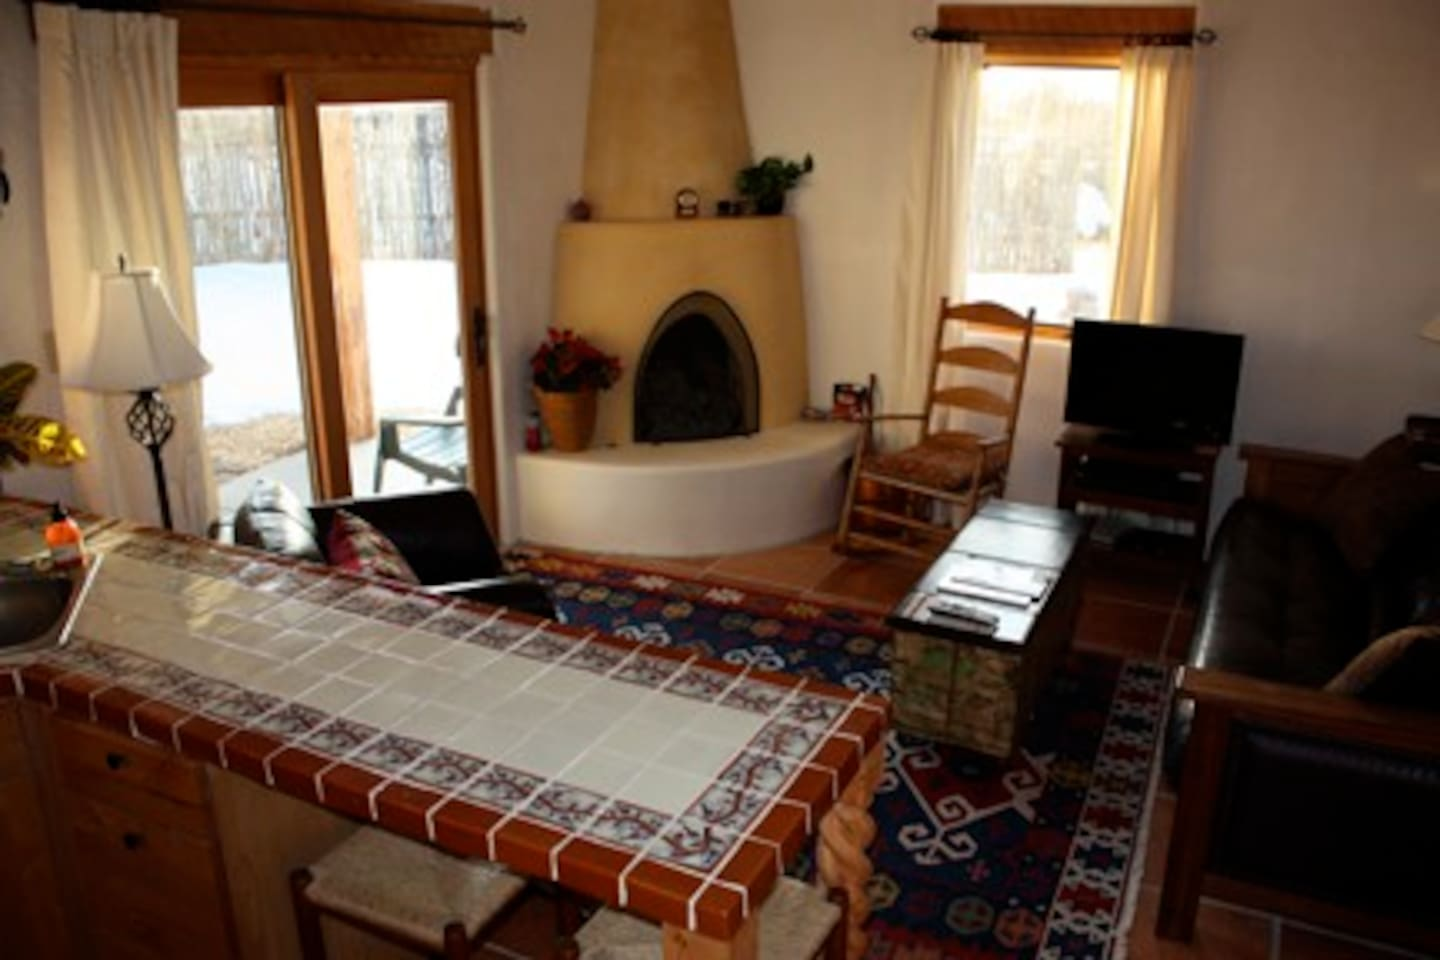 Living room with kiva fireplace - futon on right. Slider out to private yard on left.